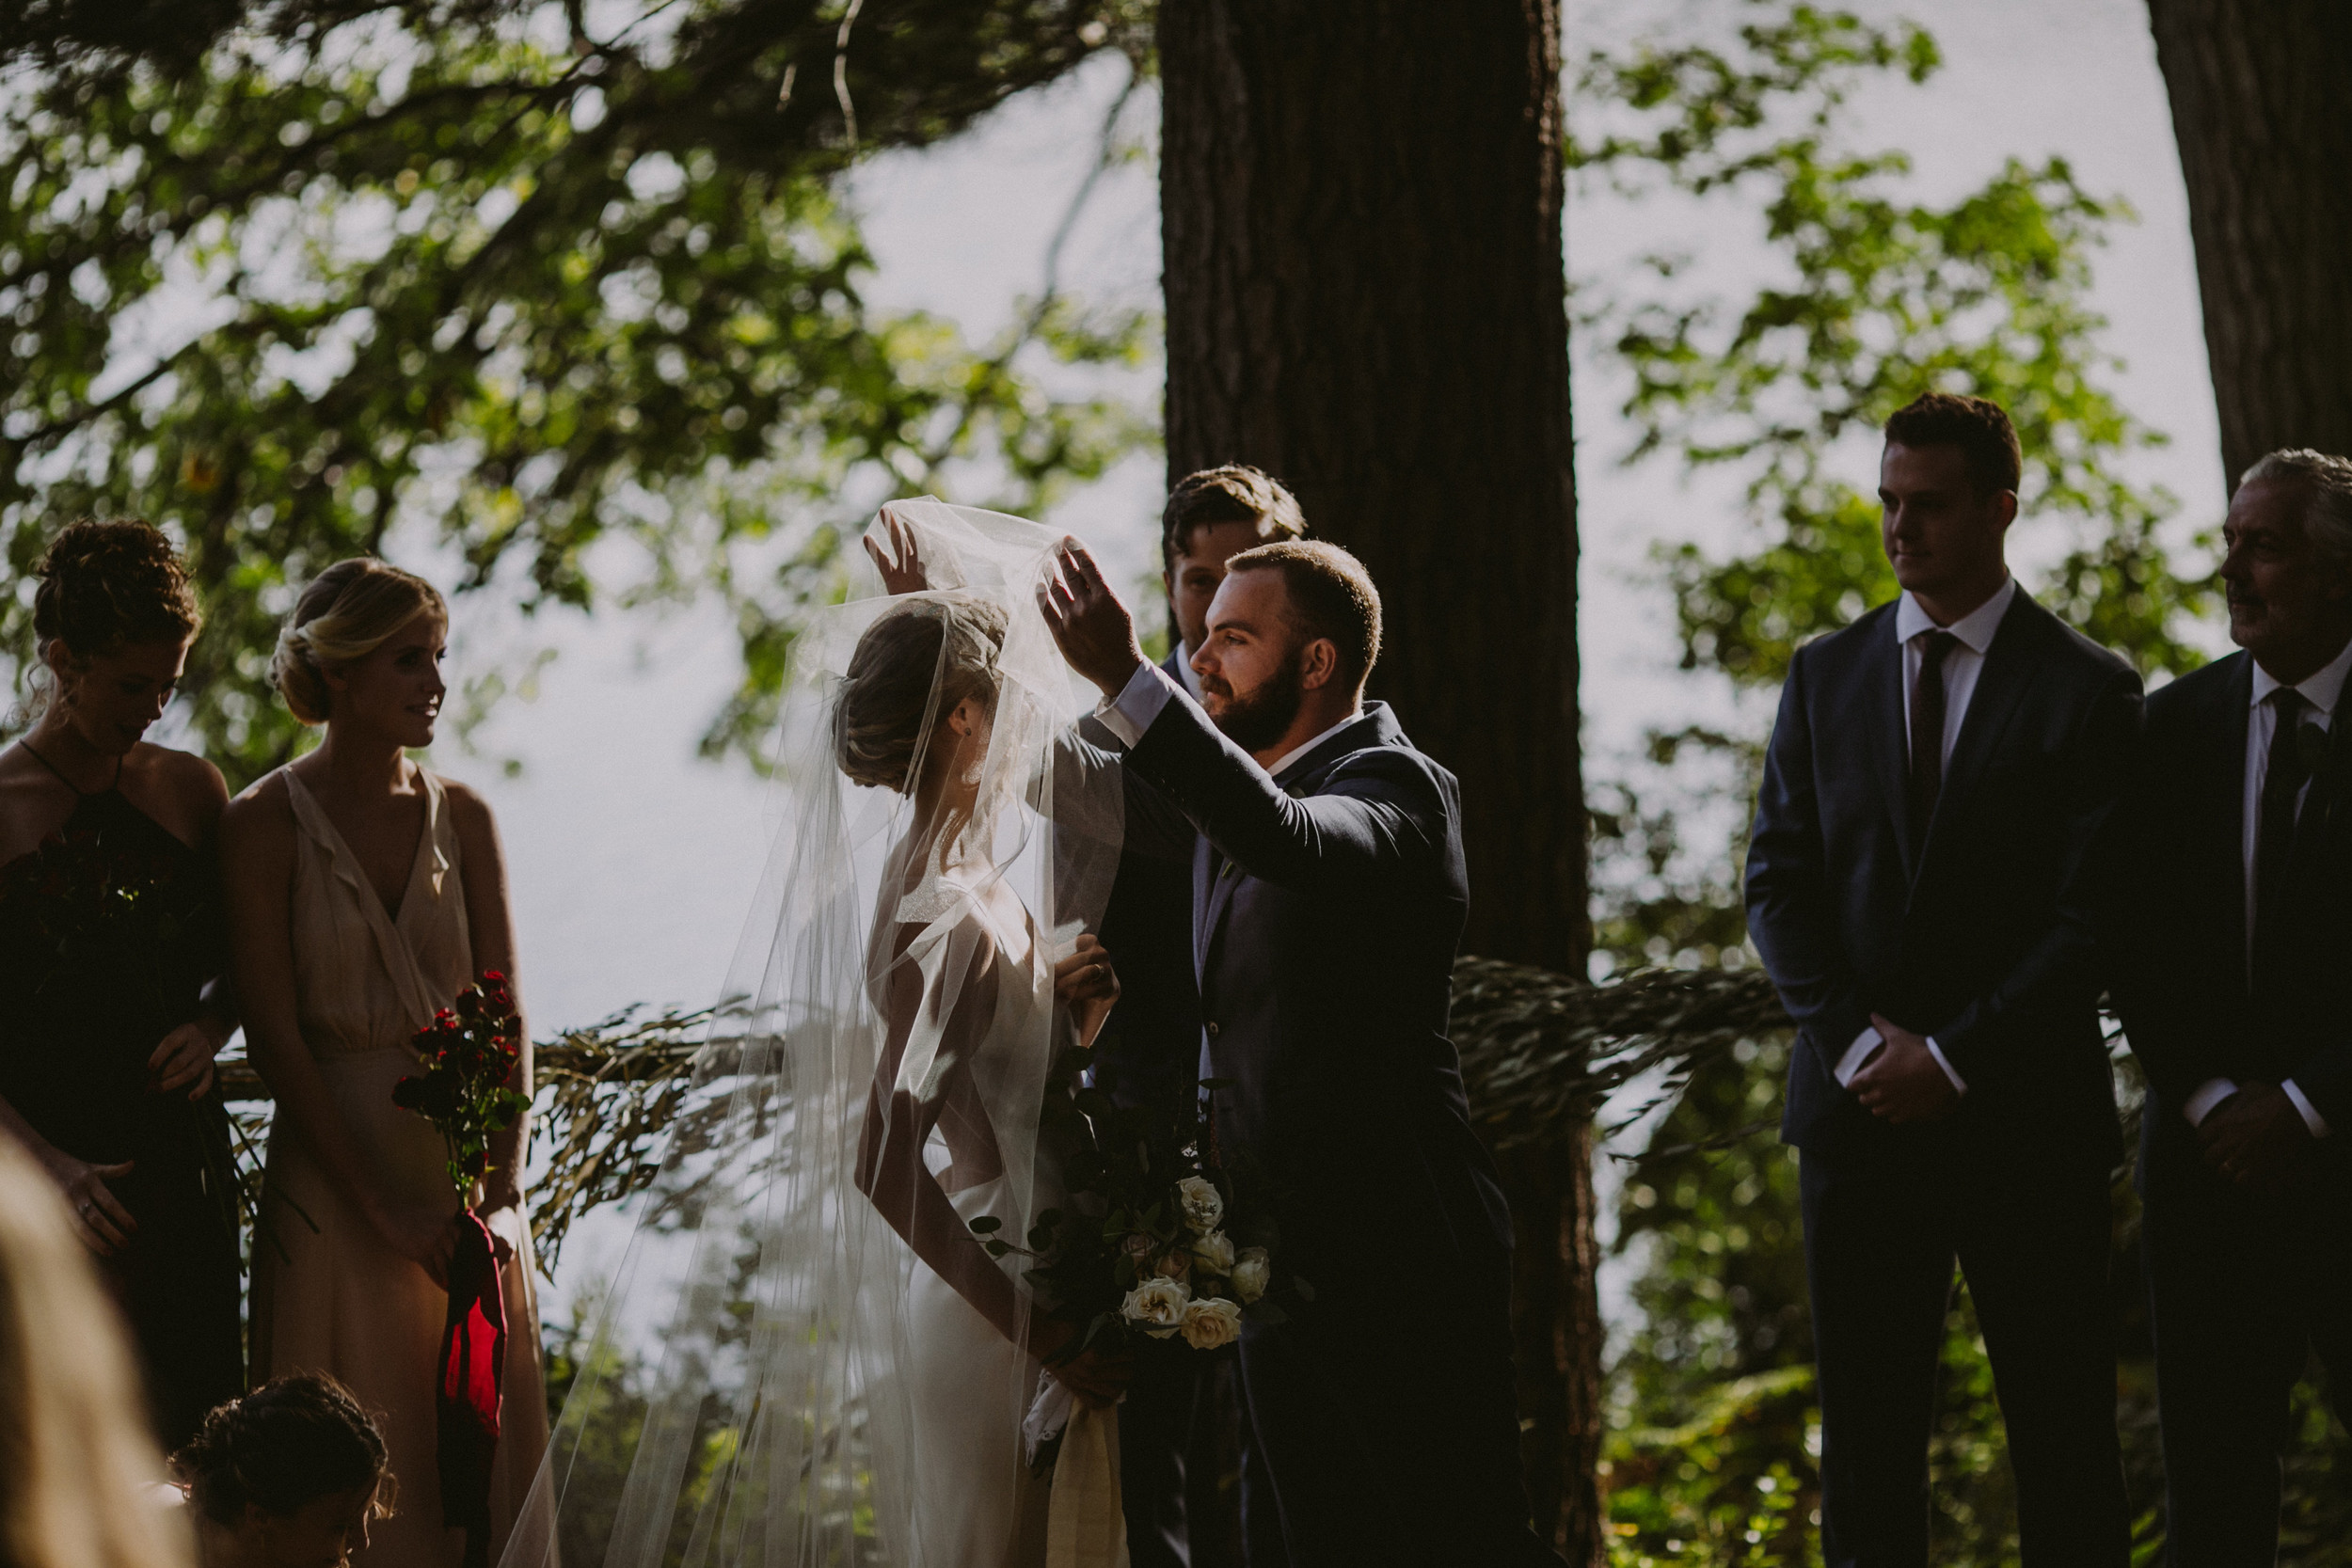 windsor mountain summer camp wedding NH chellise michael photography 1777.jpg